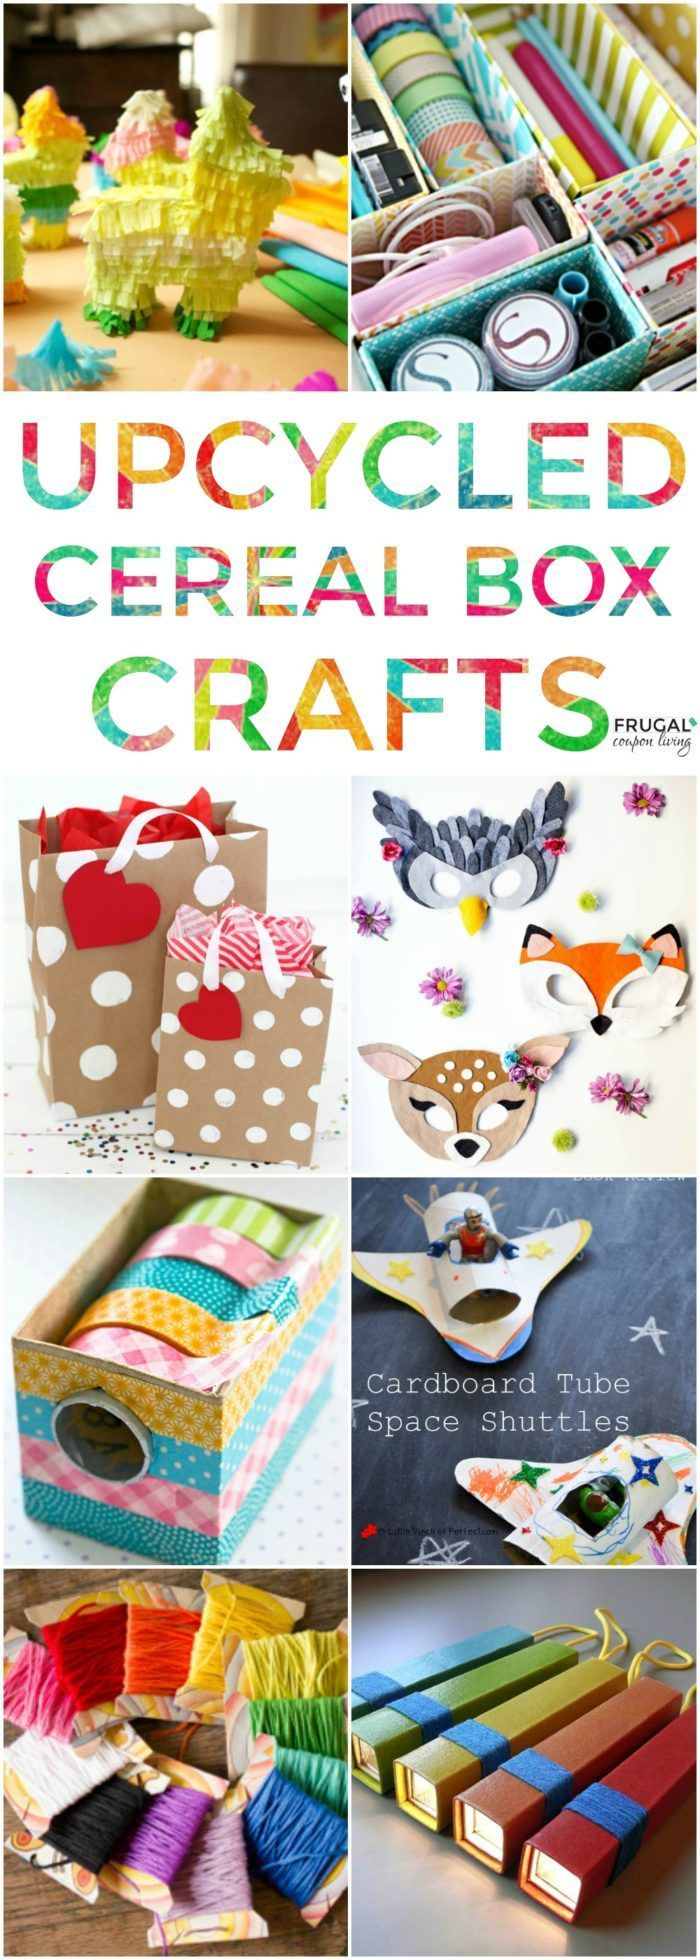 We found some of the most creative upcycled cereal box crafts. Ideas and projects for the entire family. From the most experienced crafter to someone just looking to create some raining day fun! #cerealbox #upcycledcrafts #crafts #recycled #crafting #craftsforkids #upcycled